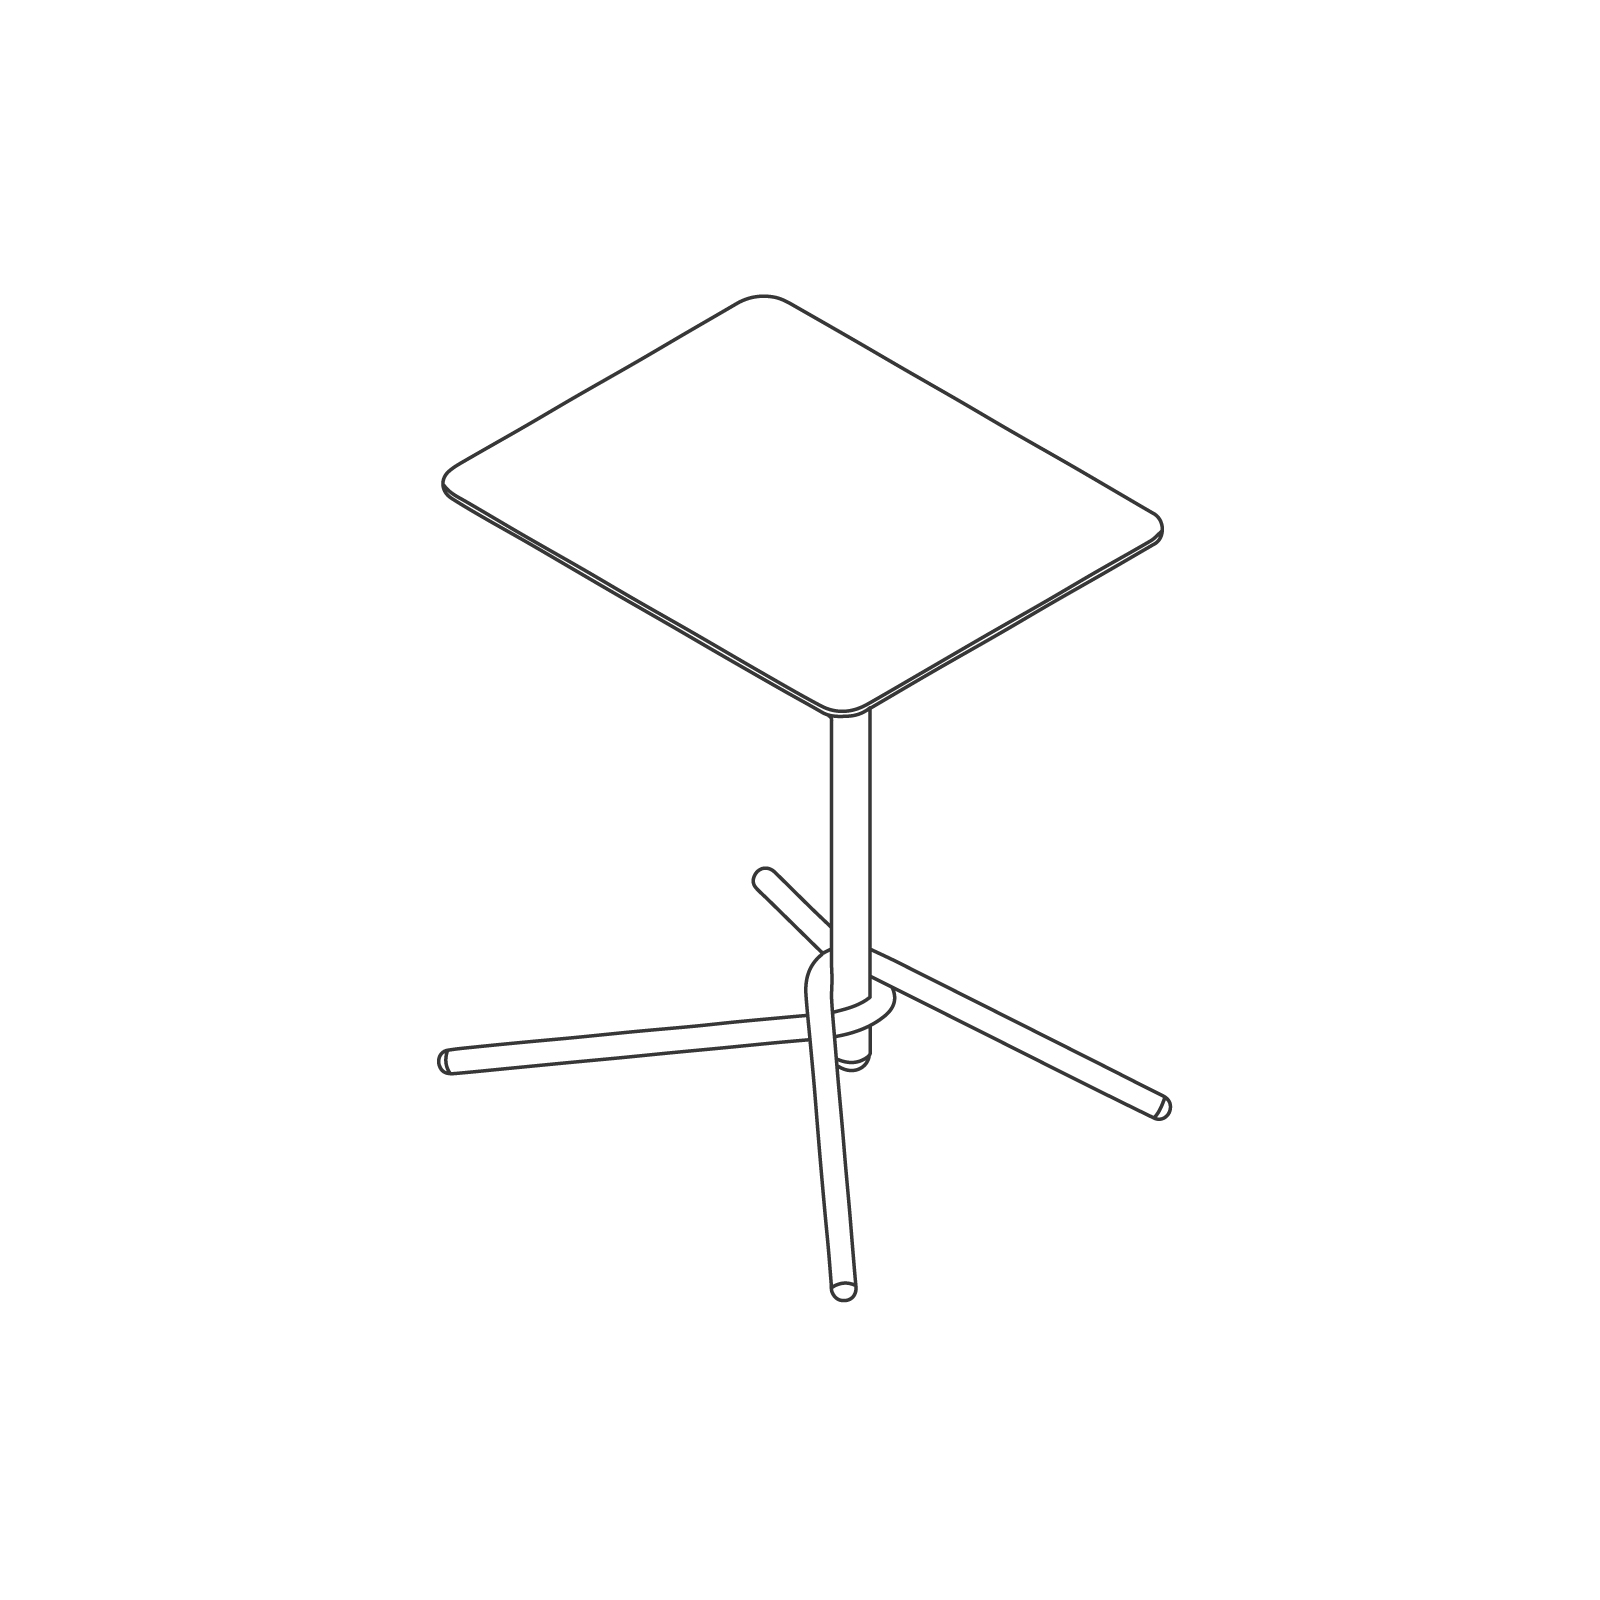 A line drawing of Knot Side Table–Rectangular.